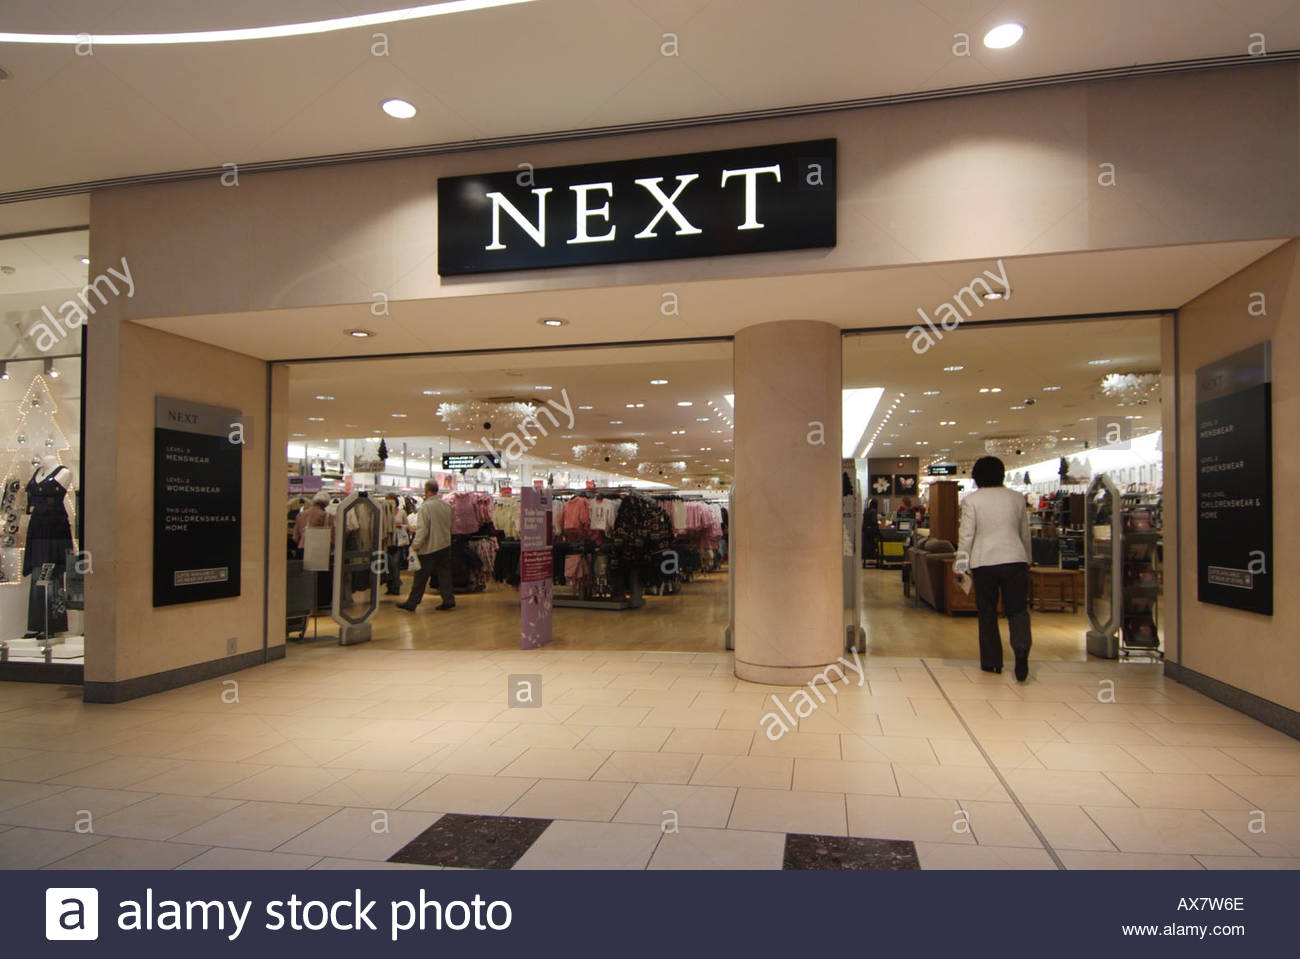 Next clothing store